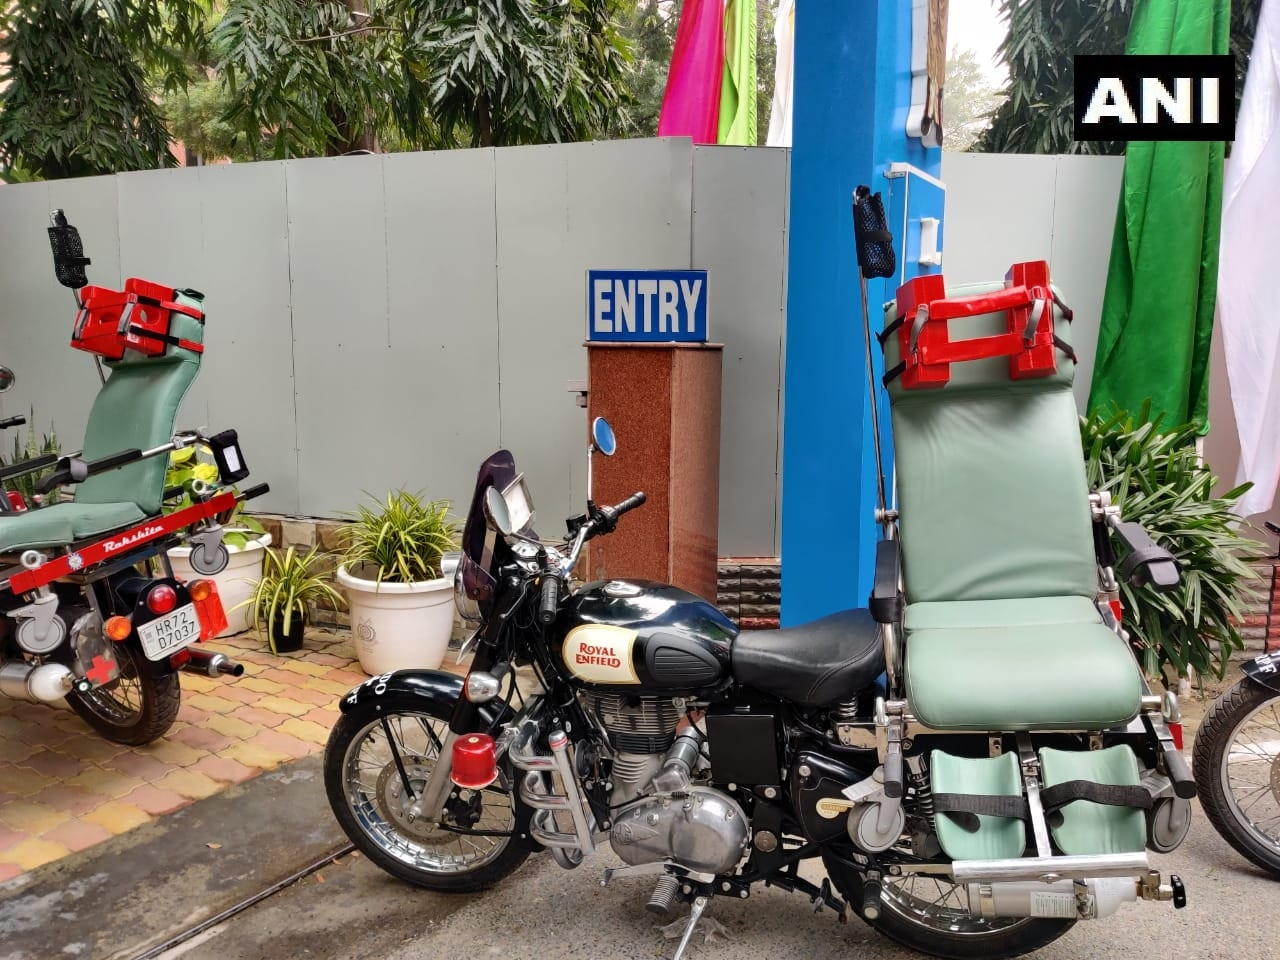 An Ambulance On Two Wheels? And Of Course, It's A Royal Enfield